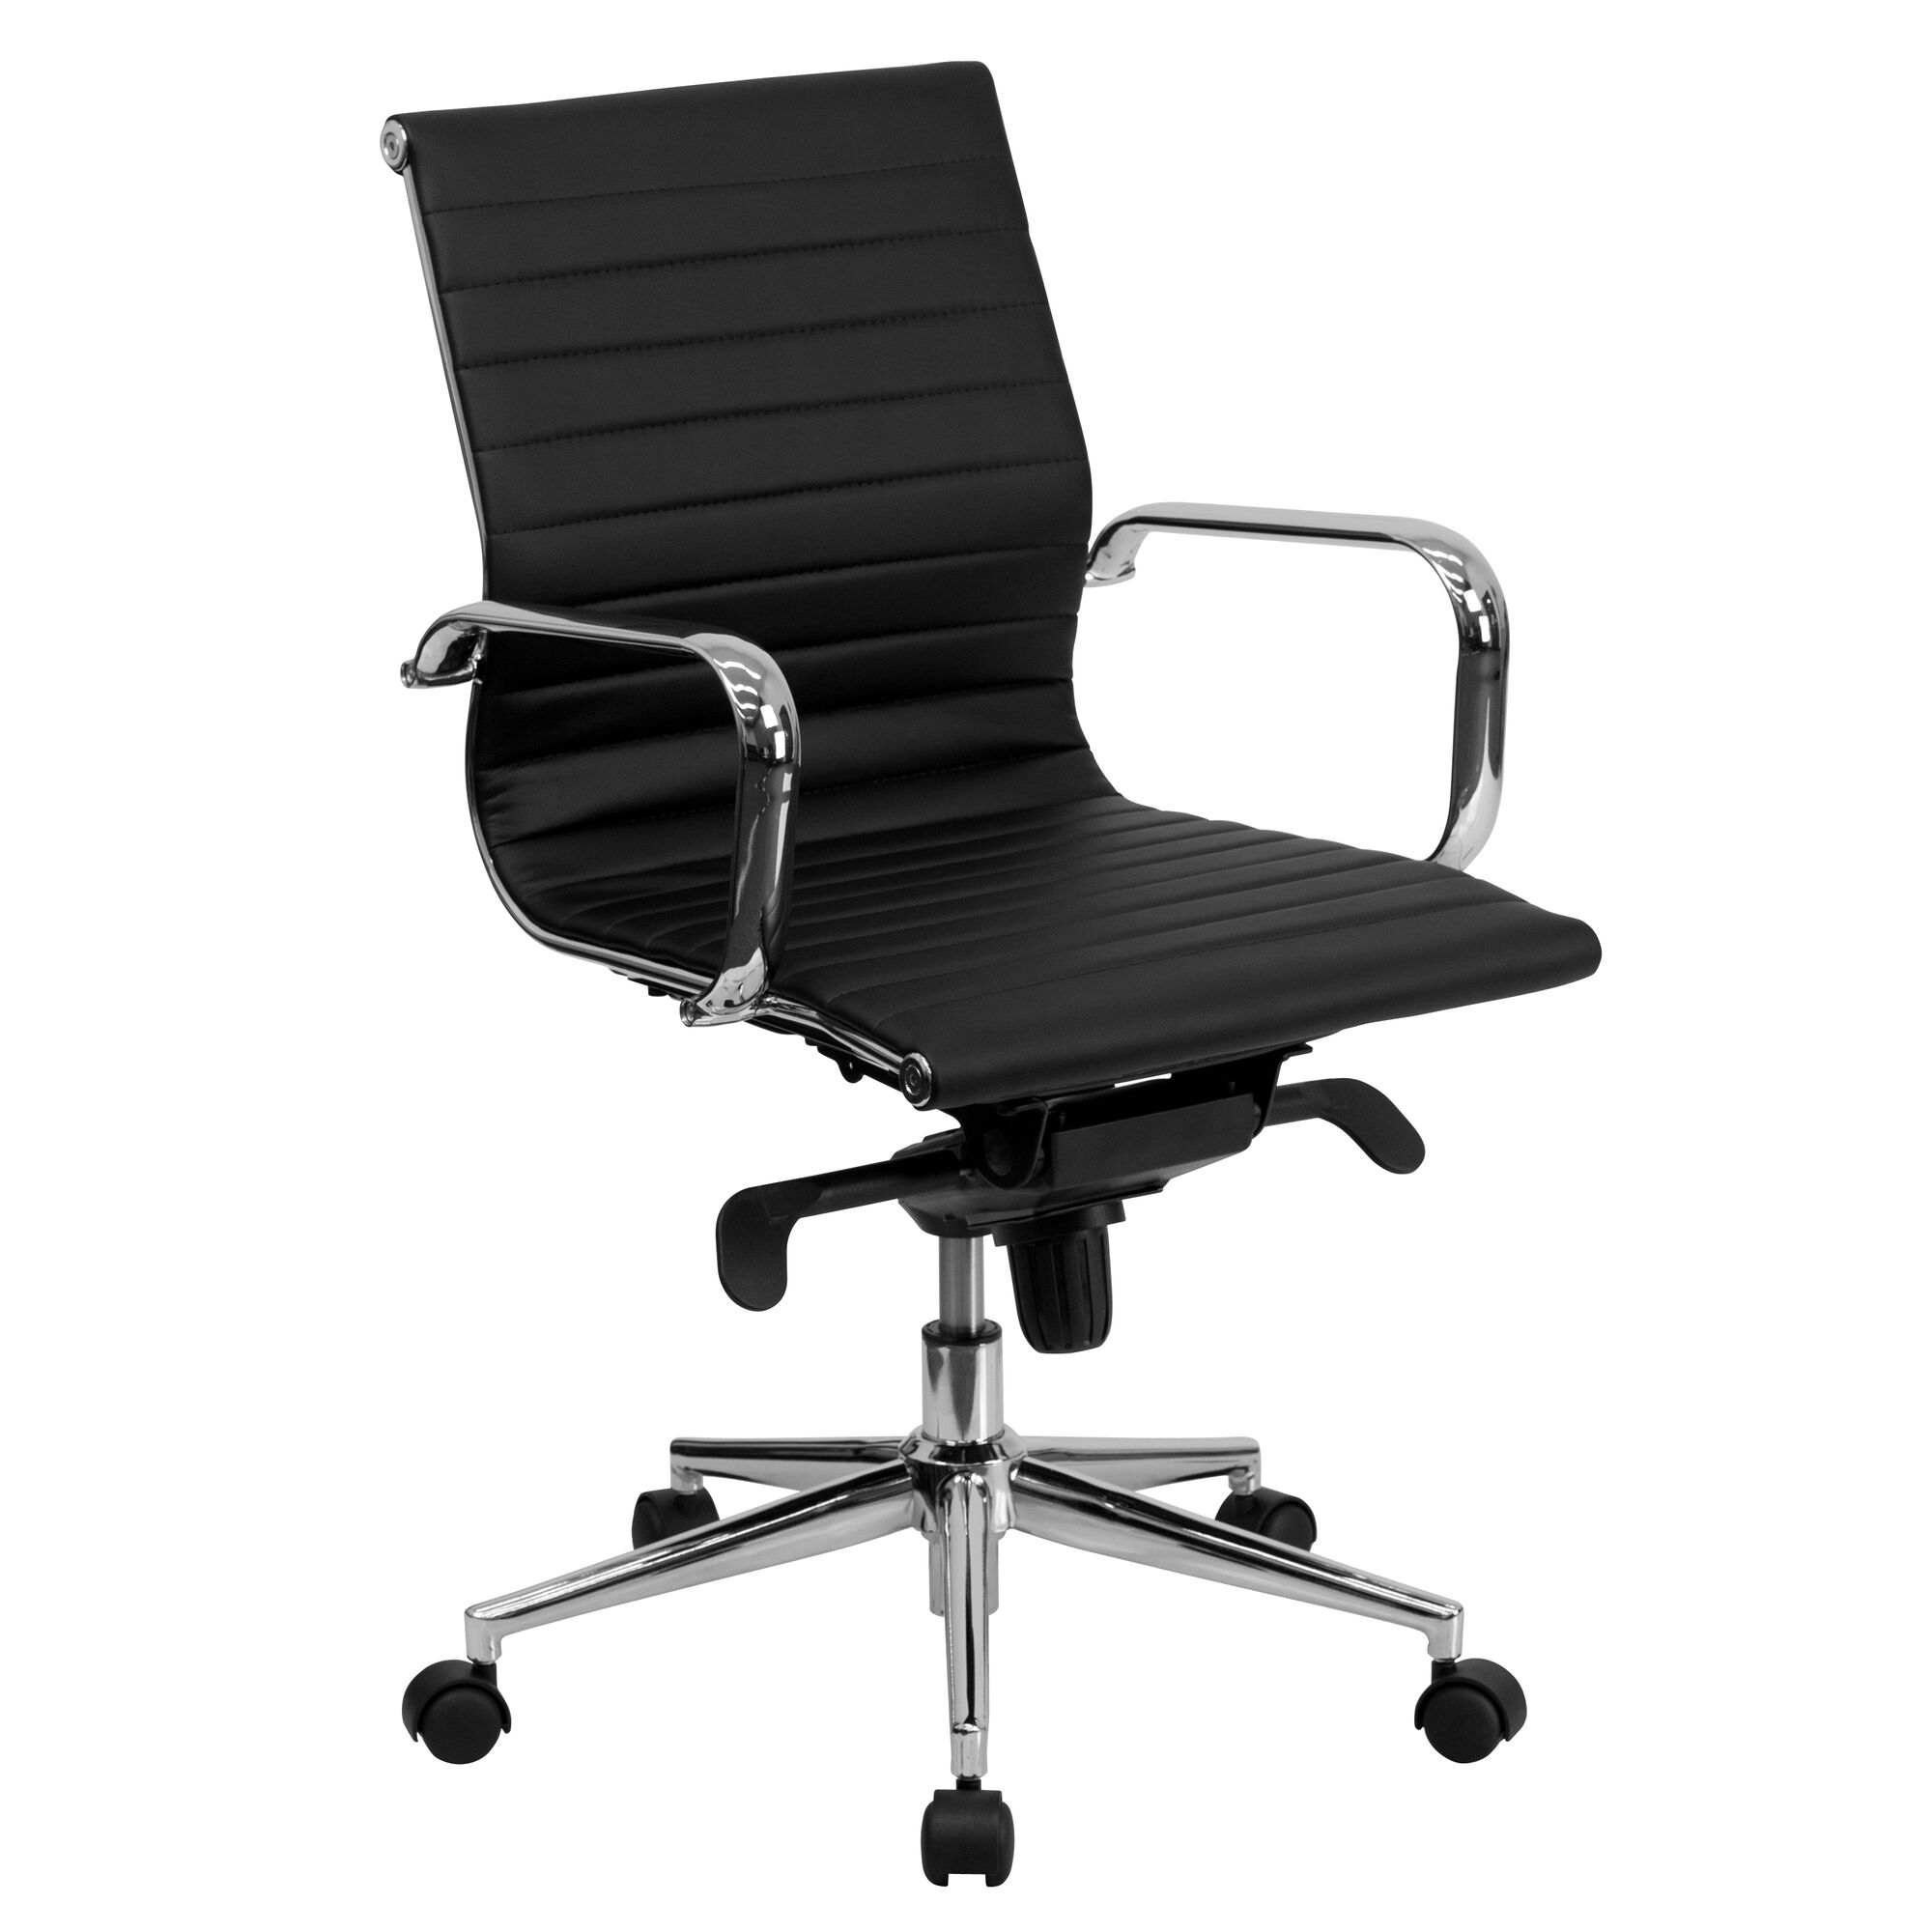 Black Mid Back Leather Chair Bt 9826m Bk Gg Bizchair Com